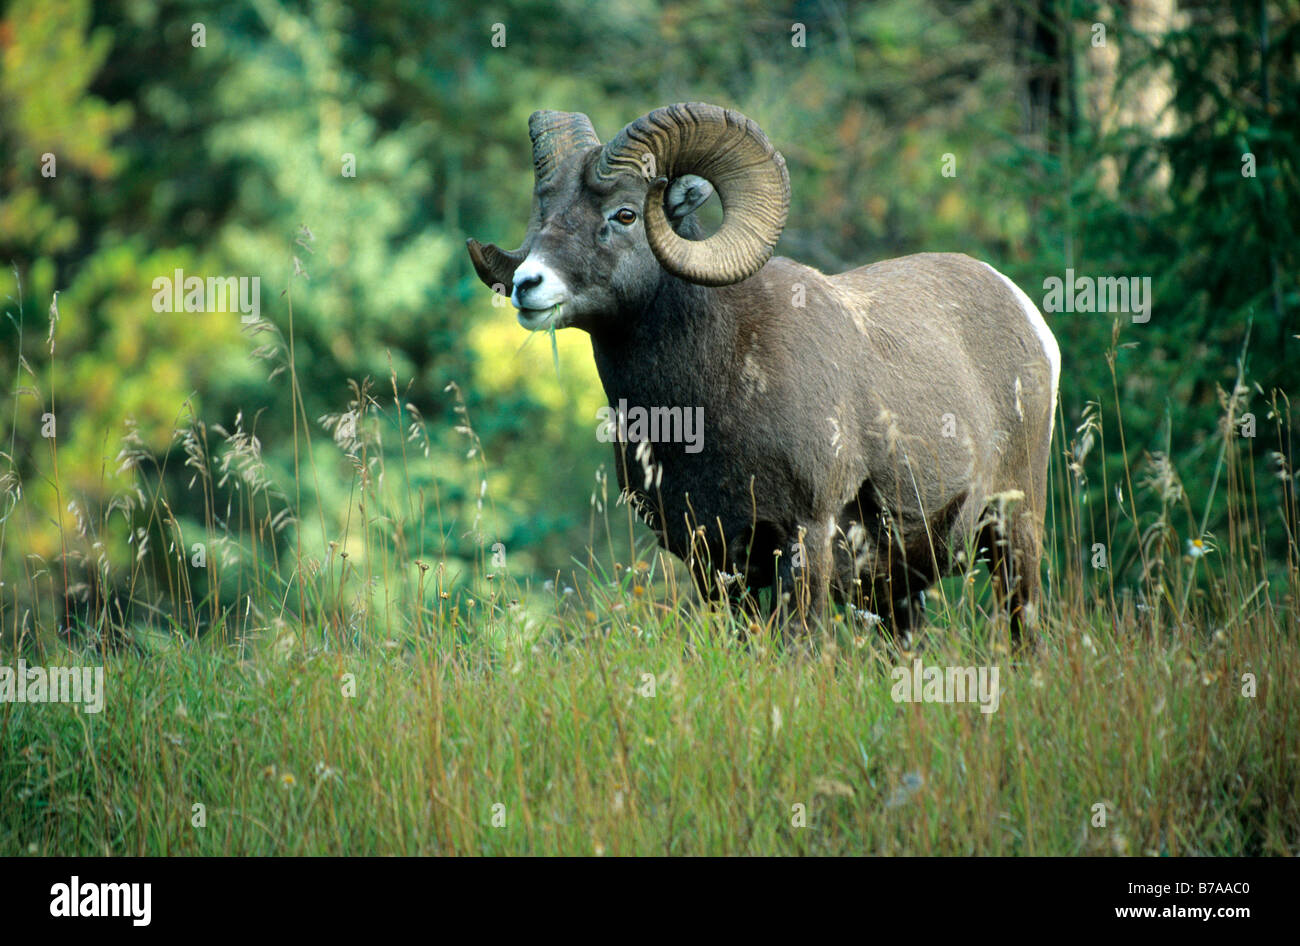 North American Big Horn Sheep (Ovis canadensis), Jasper National Park, Alberta, Canada, North America - Stock Image